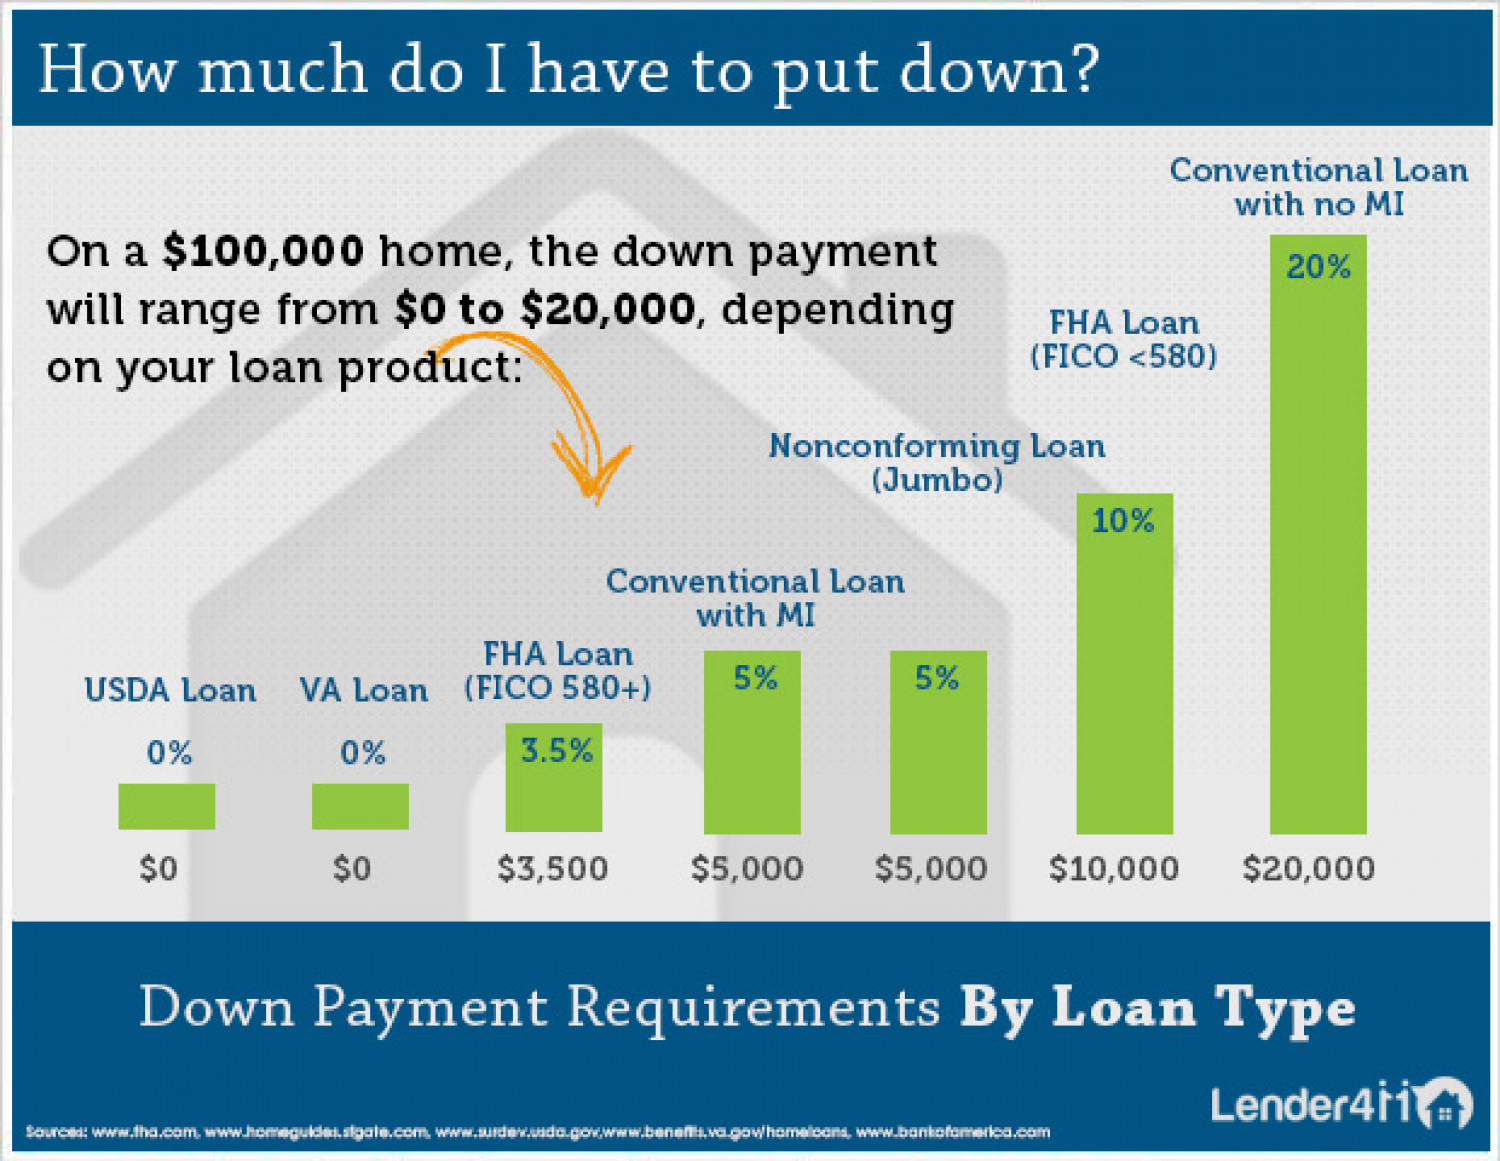 How Much Is My Down Payment? | Visual.ly